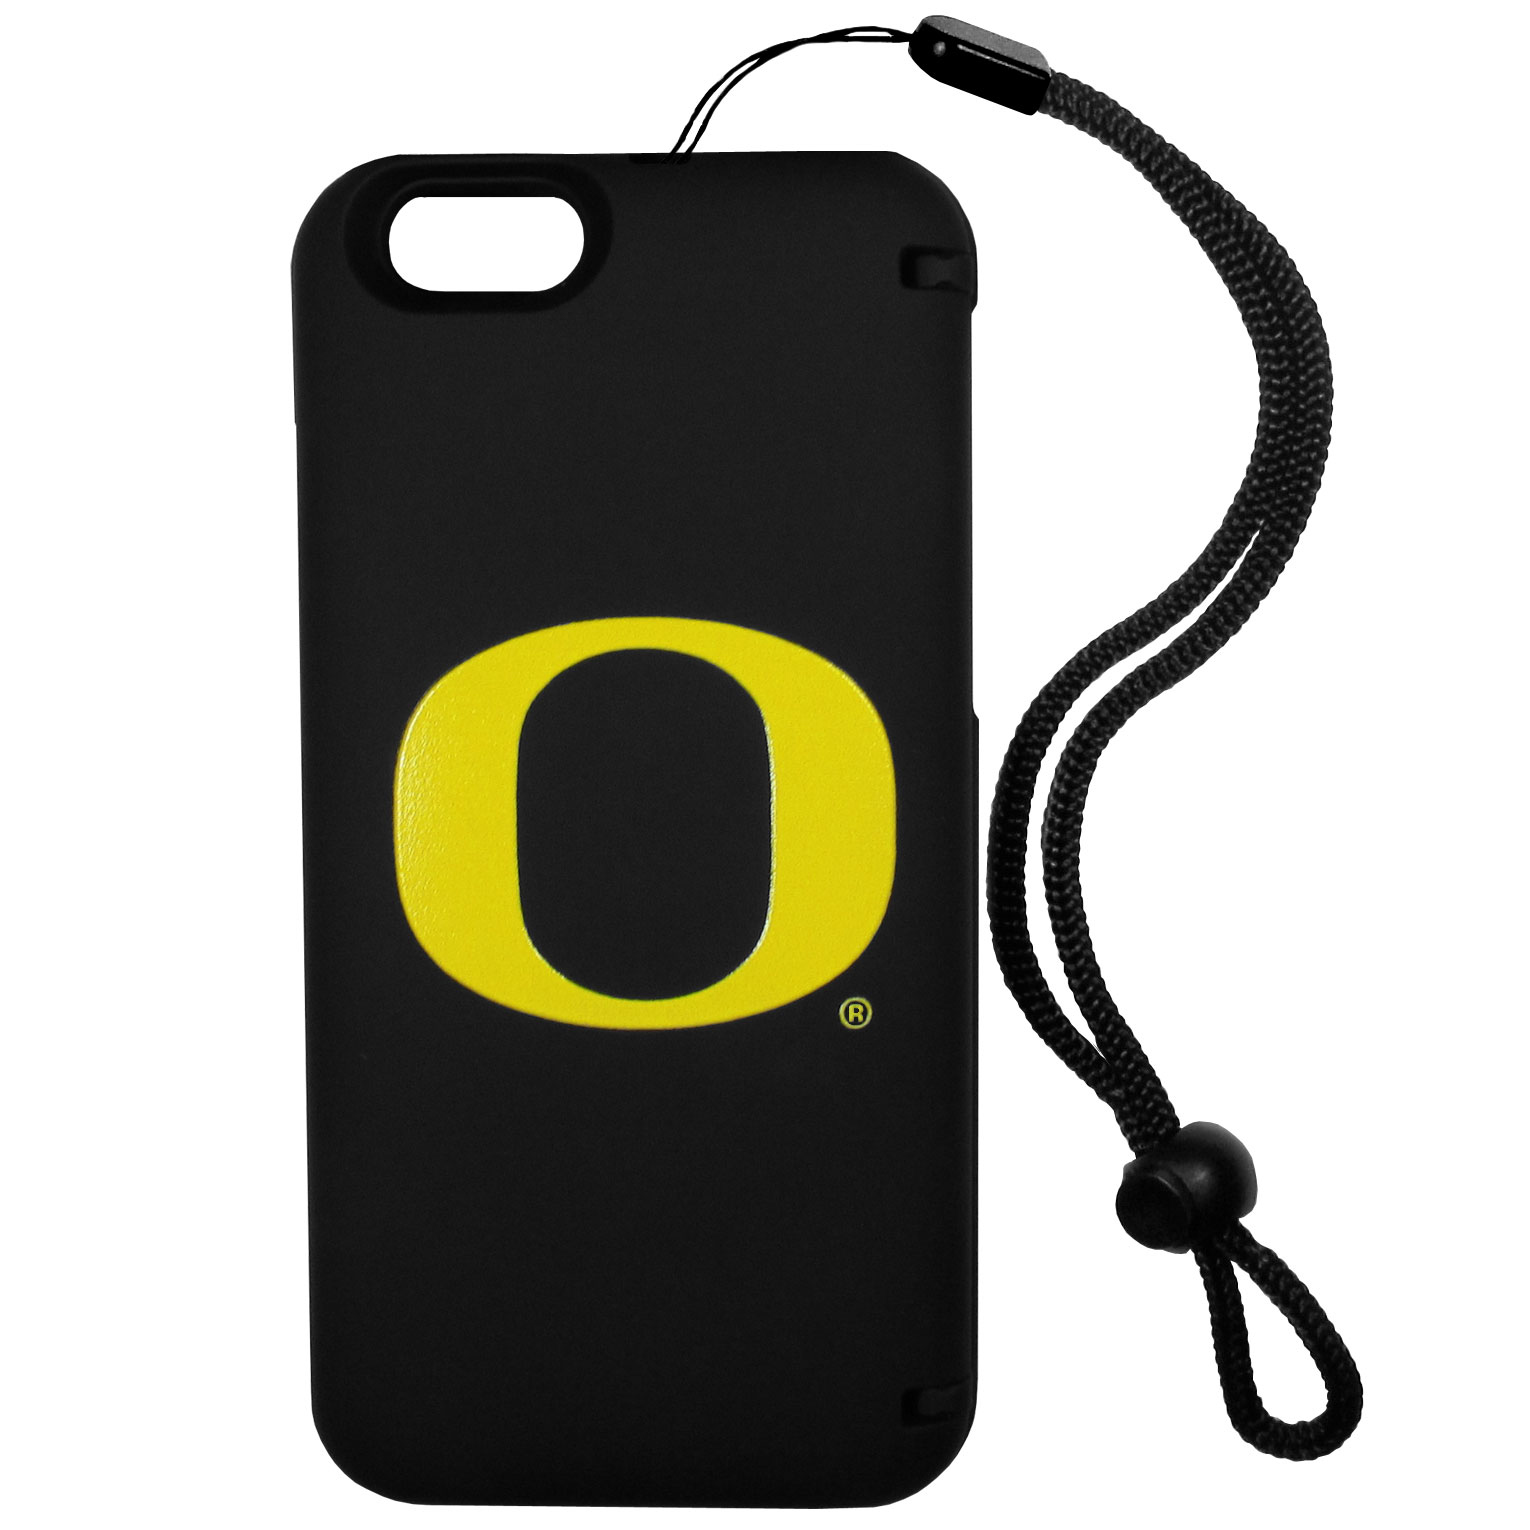 Oregon Ducks iPhone 6 Everything Case - This case really does have everything but the kitchen sink! The hidden compartment lets you keep your cards, money and tickets to the big game safe and secure and has a compact mirror so you can make sure your game face is ready to go. It also comes with a kickstand to make chatting and watching videos a breeze. The wrist strap allows you to travel with ease with your everything case. If that's not enough, it also comes with the Oregon Ducks logo printed in expert detail on the front.